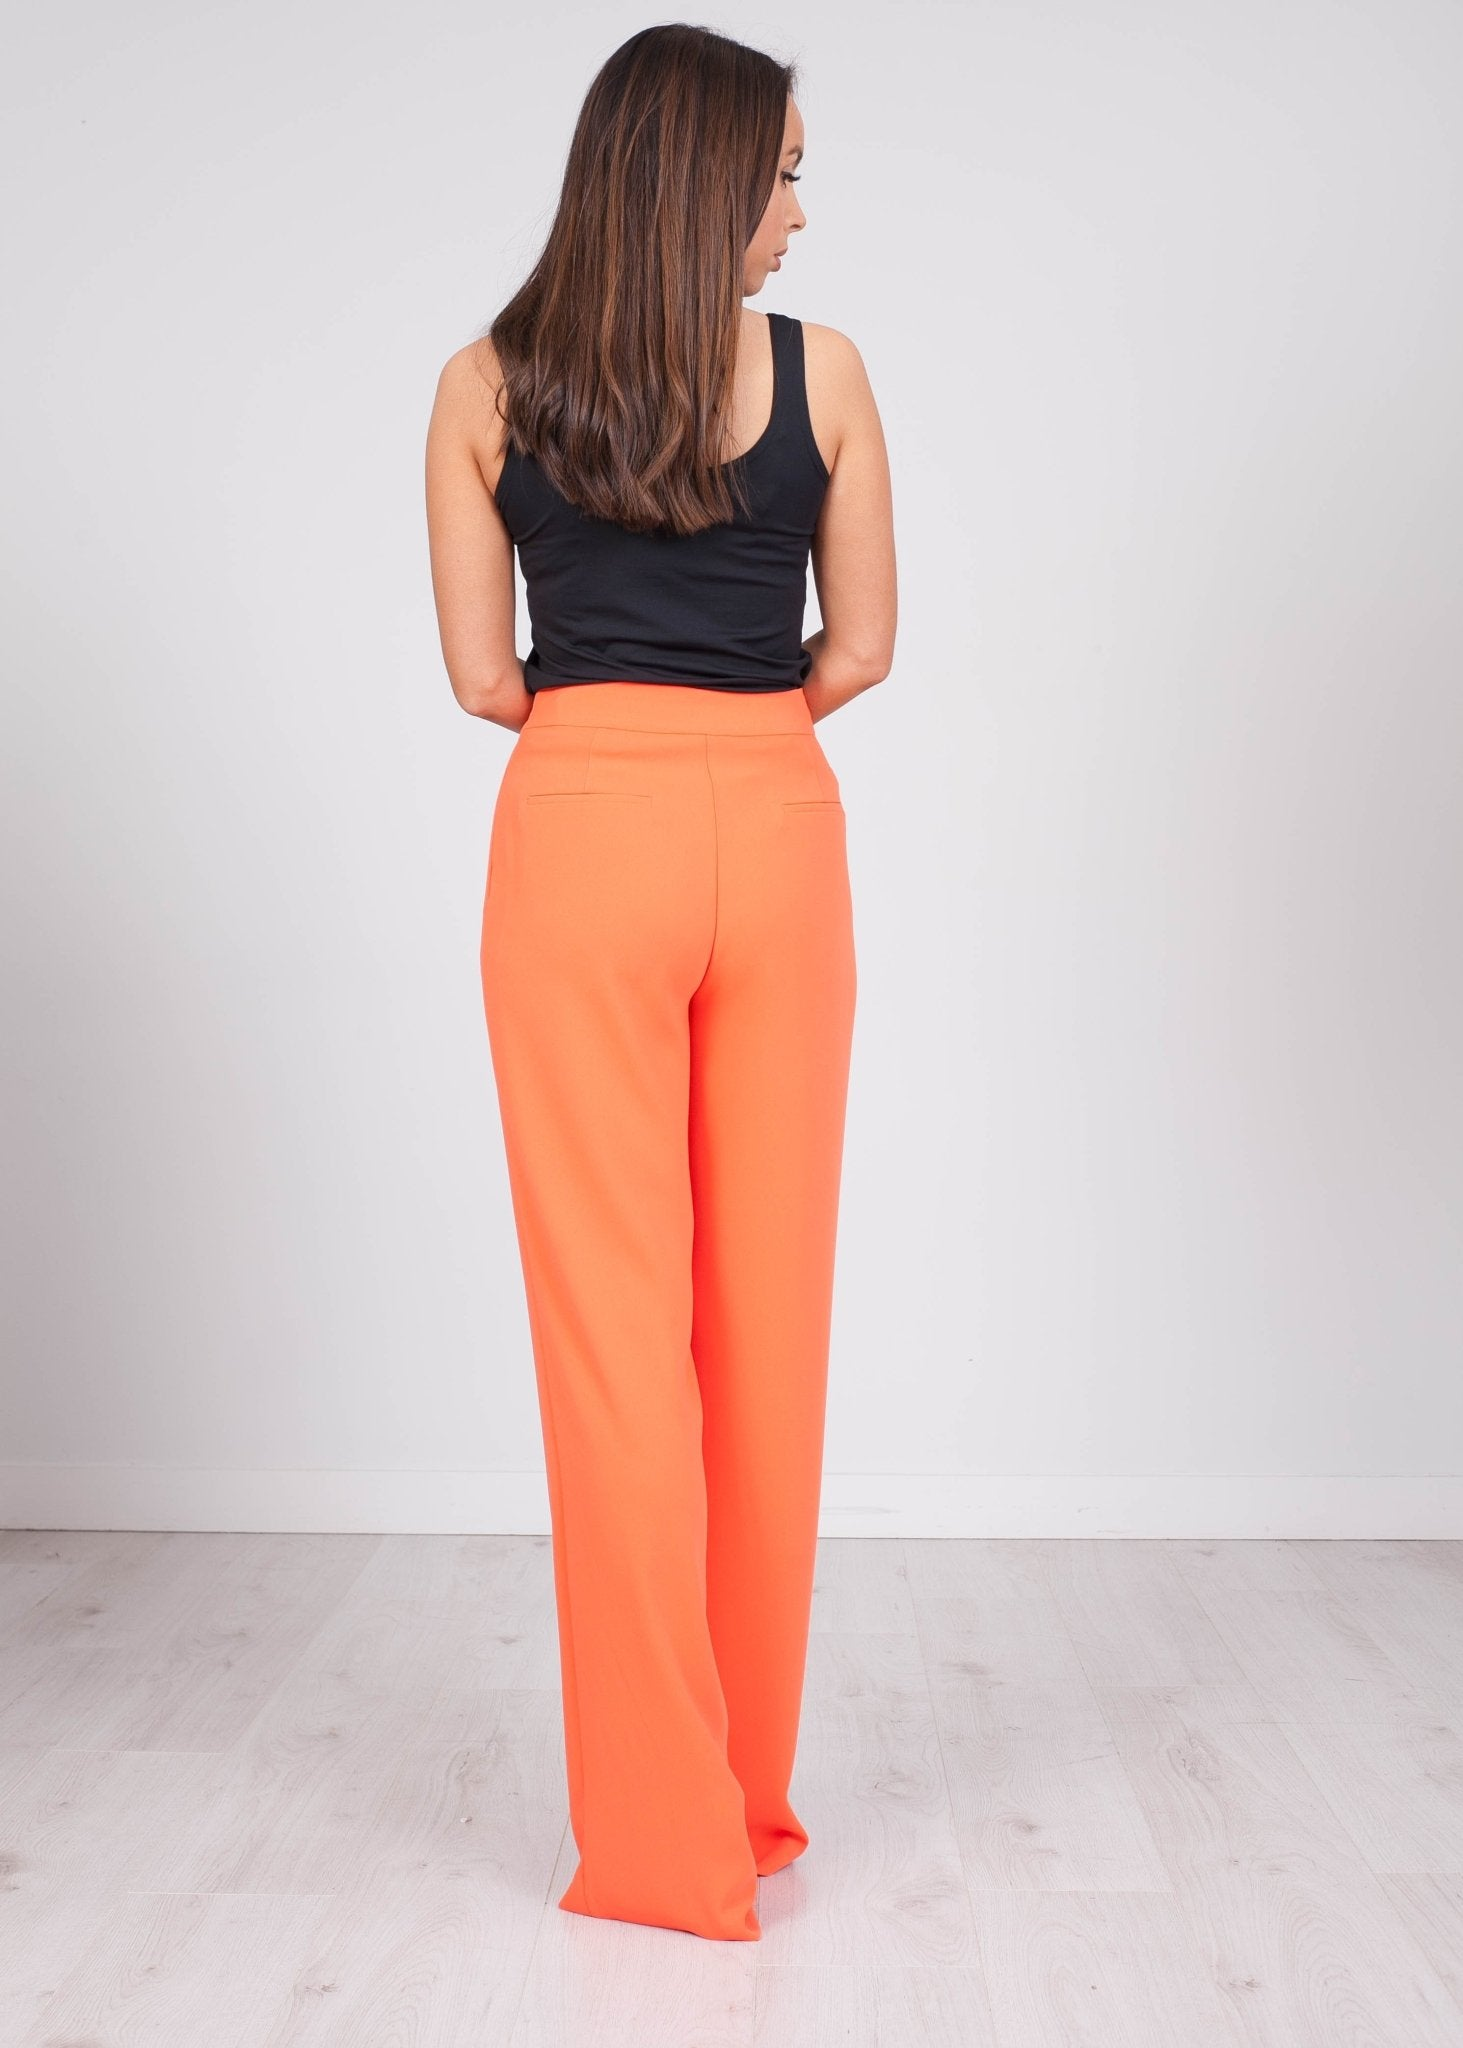 Alana Orange Trousers - The Walk in Wardrobe